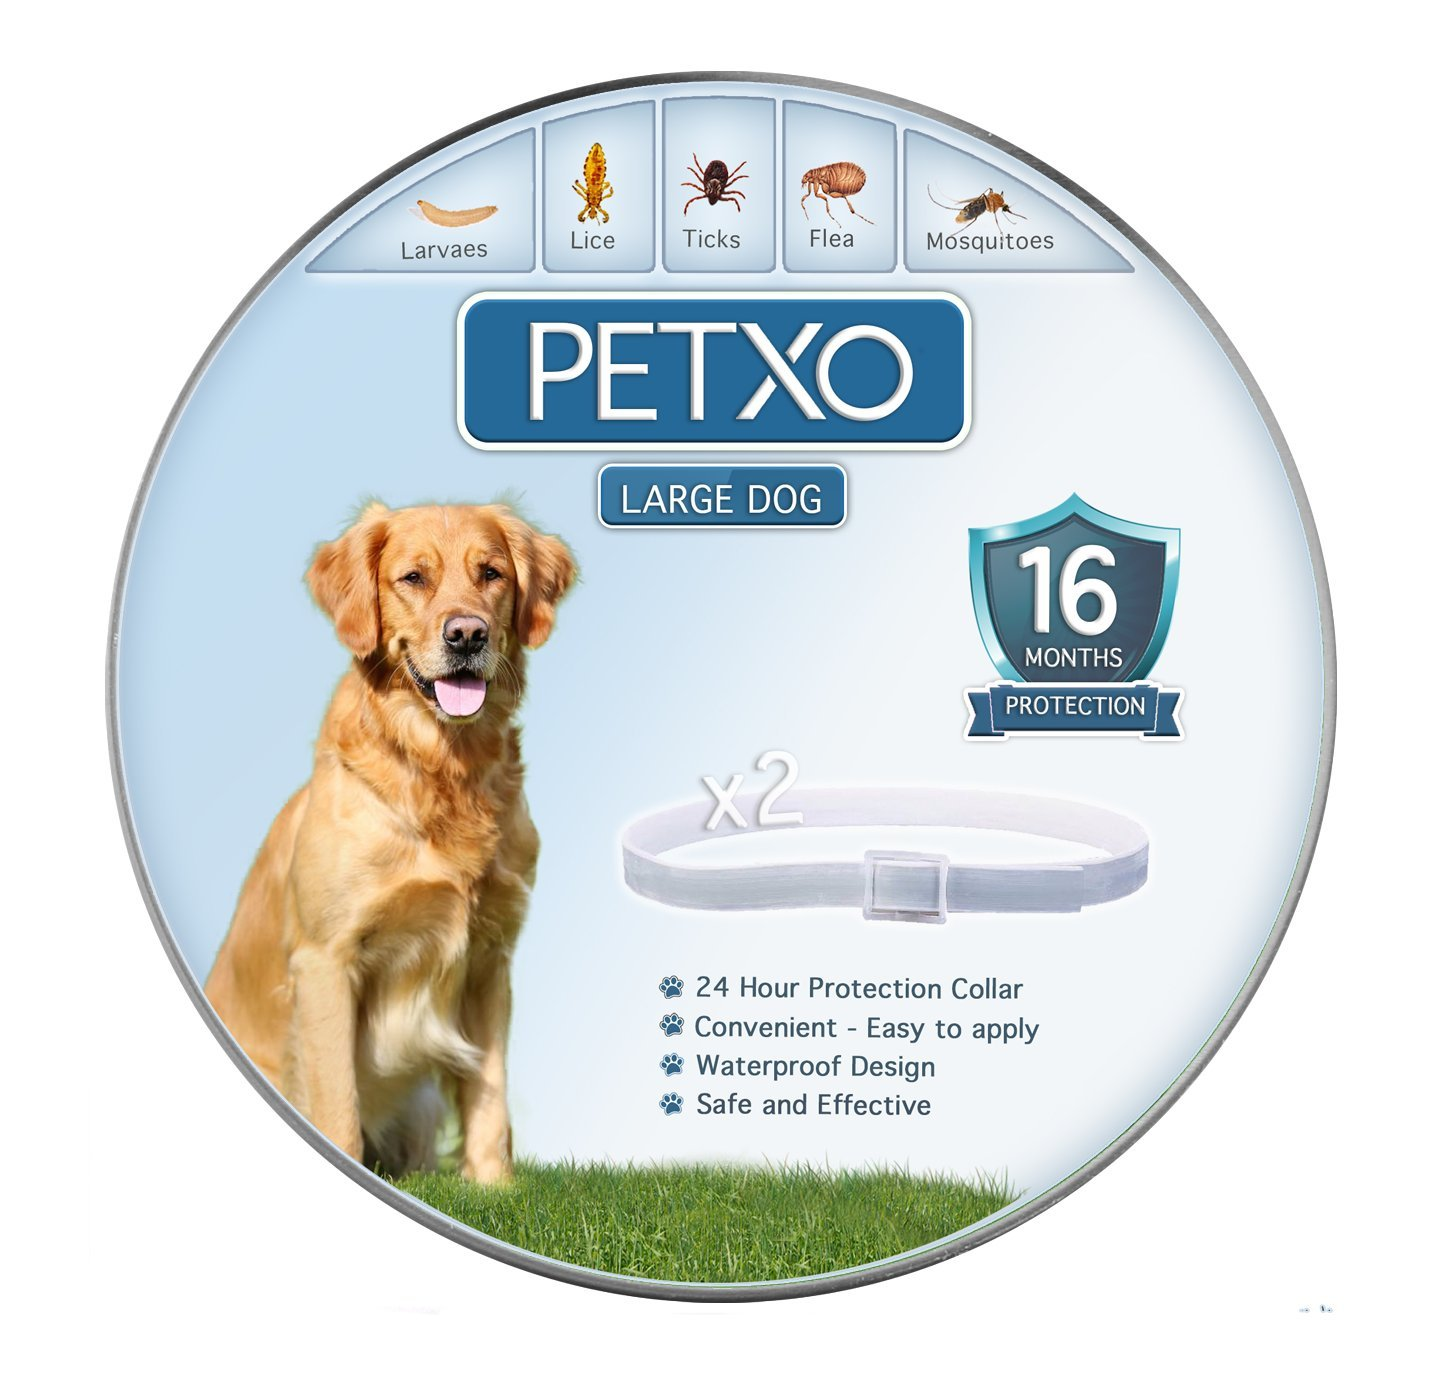 PETXO - Dogs Flea and Tick Collar. ''16 Months Protection''. Waterproof Design. Adjustable, One Size Fits Medium and Large Dogs. Grey Collar For Dogs With Natural Essential Oils.